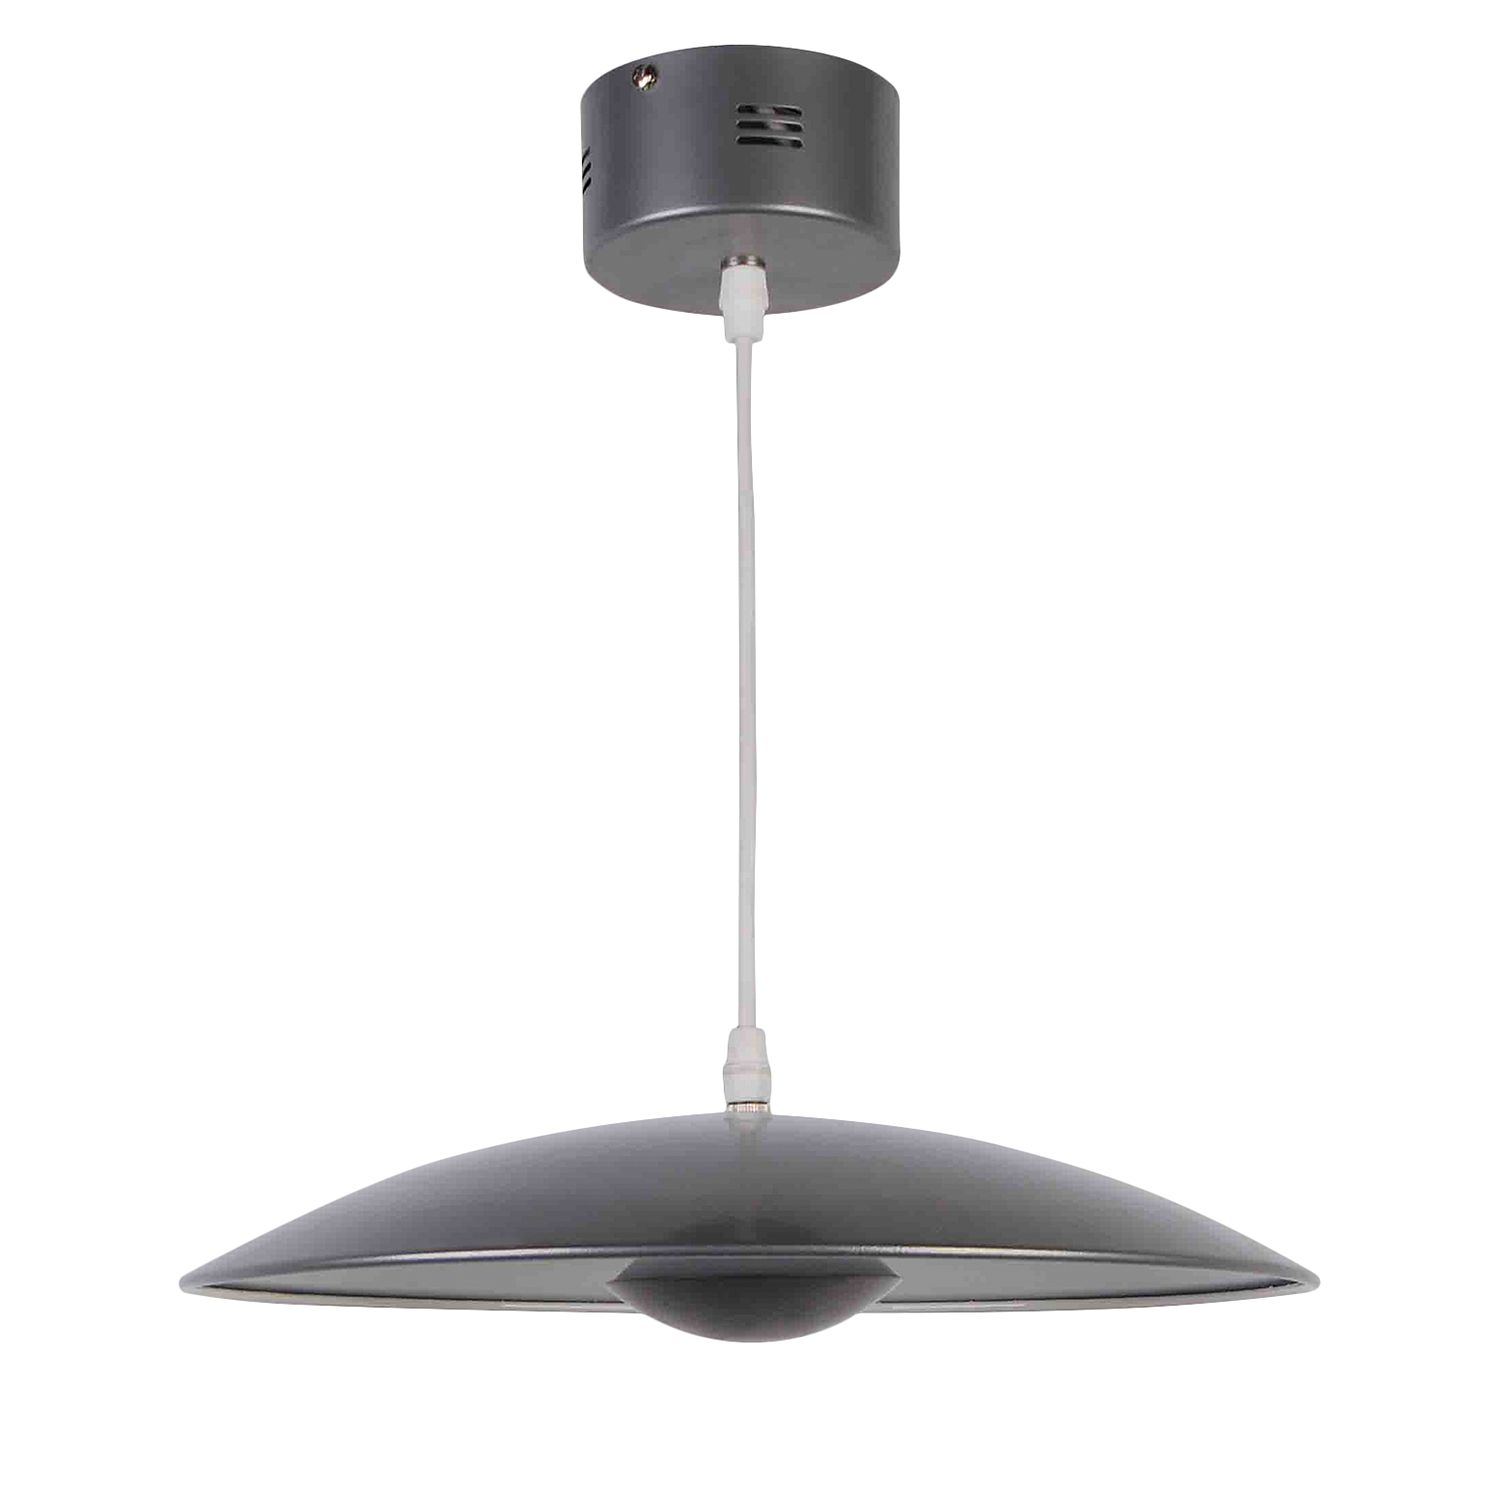 home24 LED-Pendelleuchte Ufo